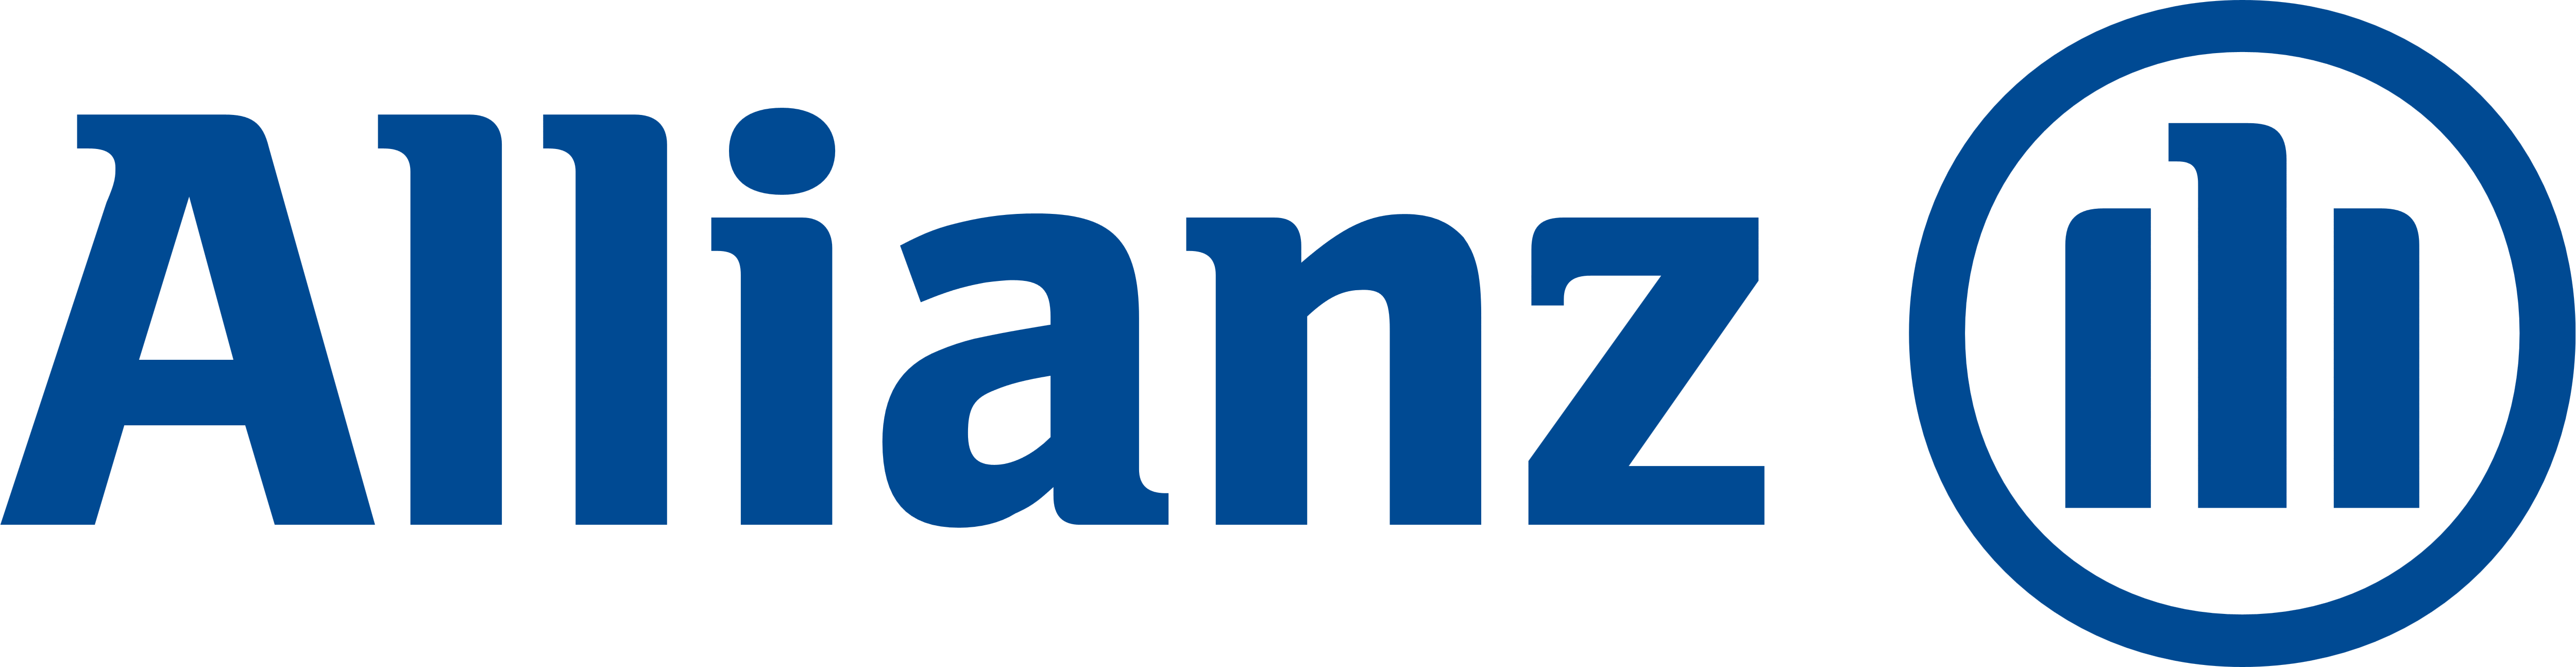 Allianz – Logos Download